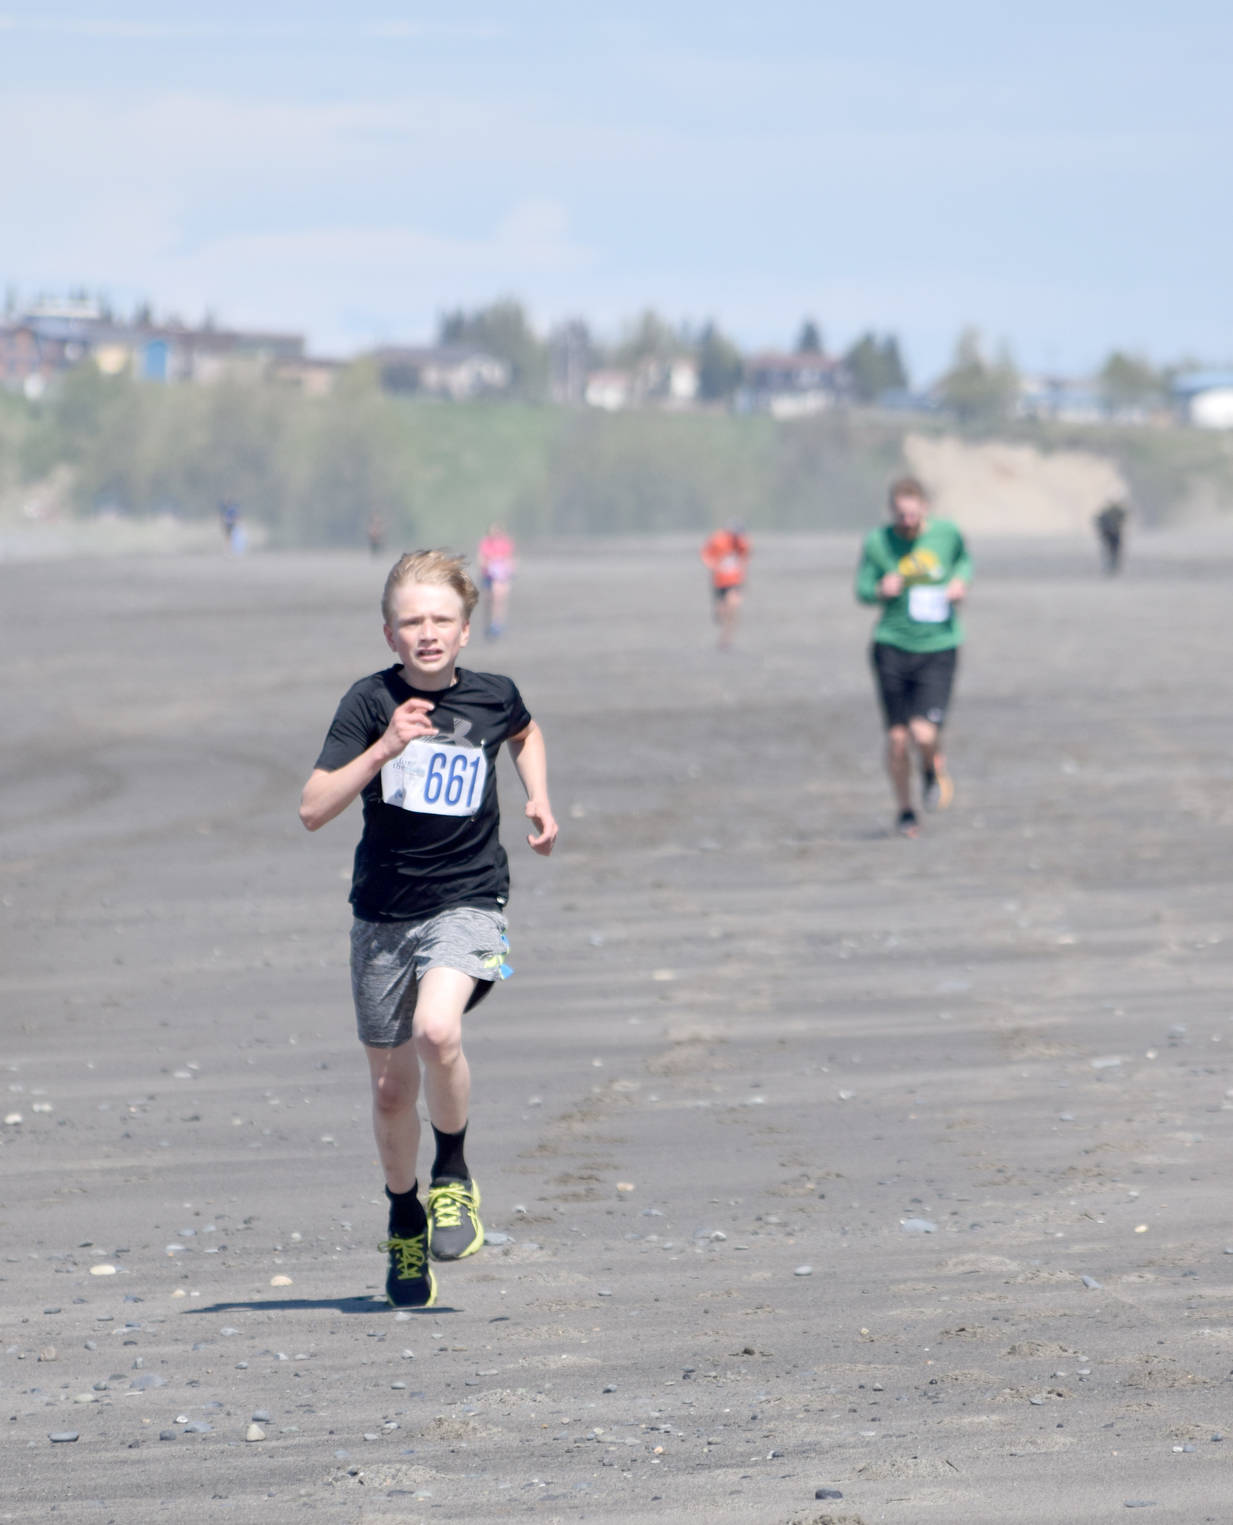 Jack Laker finishes off his victory in the three-mile run at the Mouth to Mouth Wild Run and Ride on Monday at the Kenai beach. (Photo by Jeff Helminiak/Peninsula Clarion)